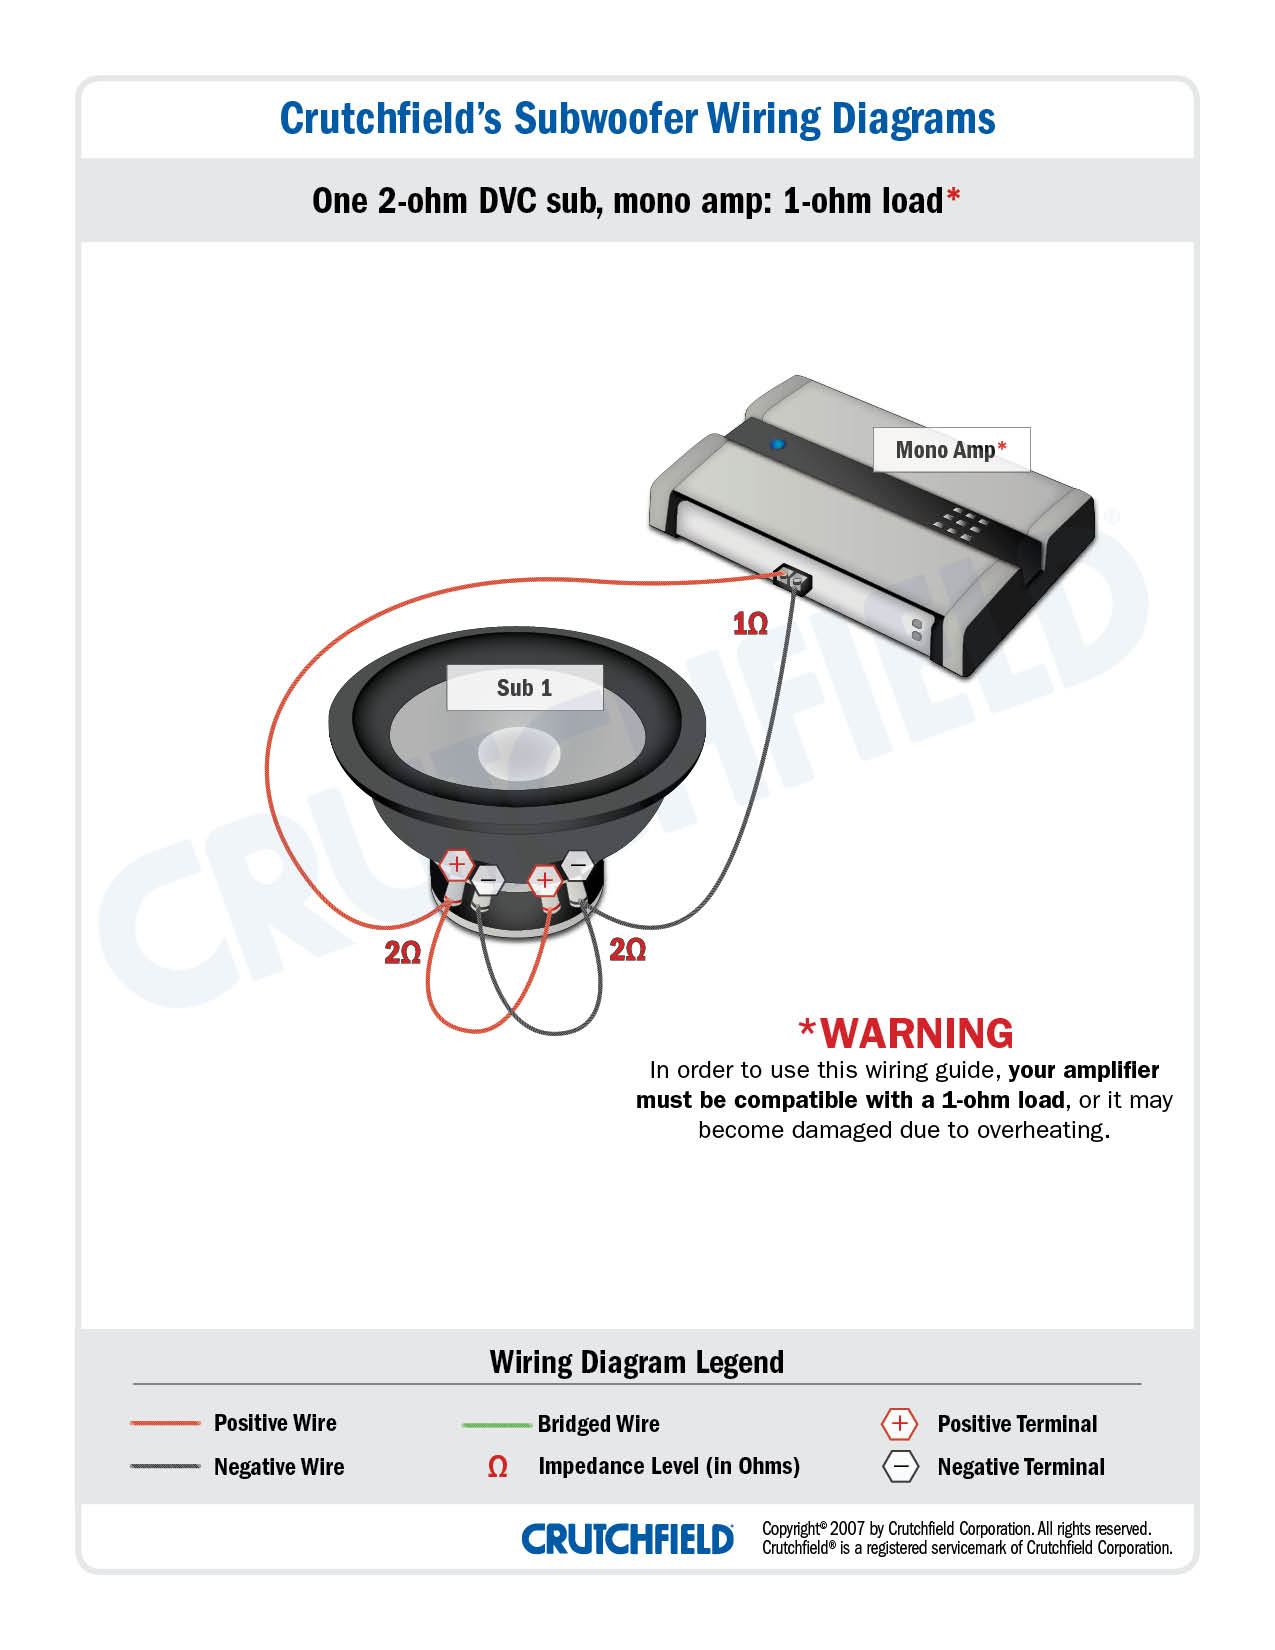 Subwoofer Wiring Diagrams How To Wire Your Subs Diagram For 2007 Camry Jbl Amp If Cant Deliver Its Full Power At That Impedance And You Want Maximize Systems Could Either Get A Different Or